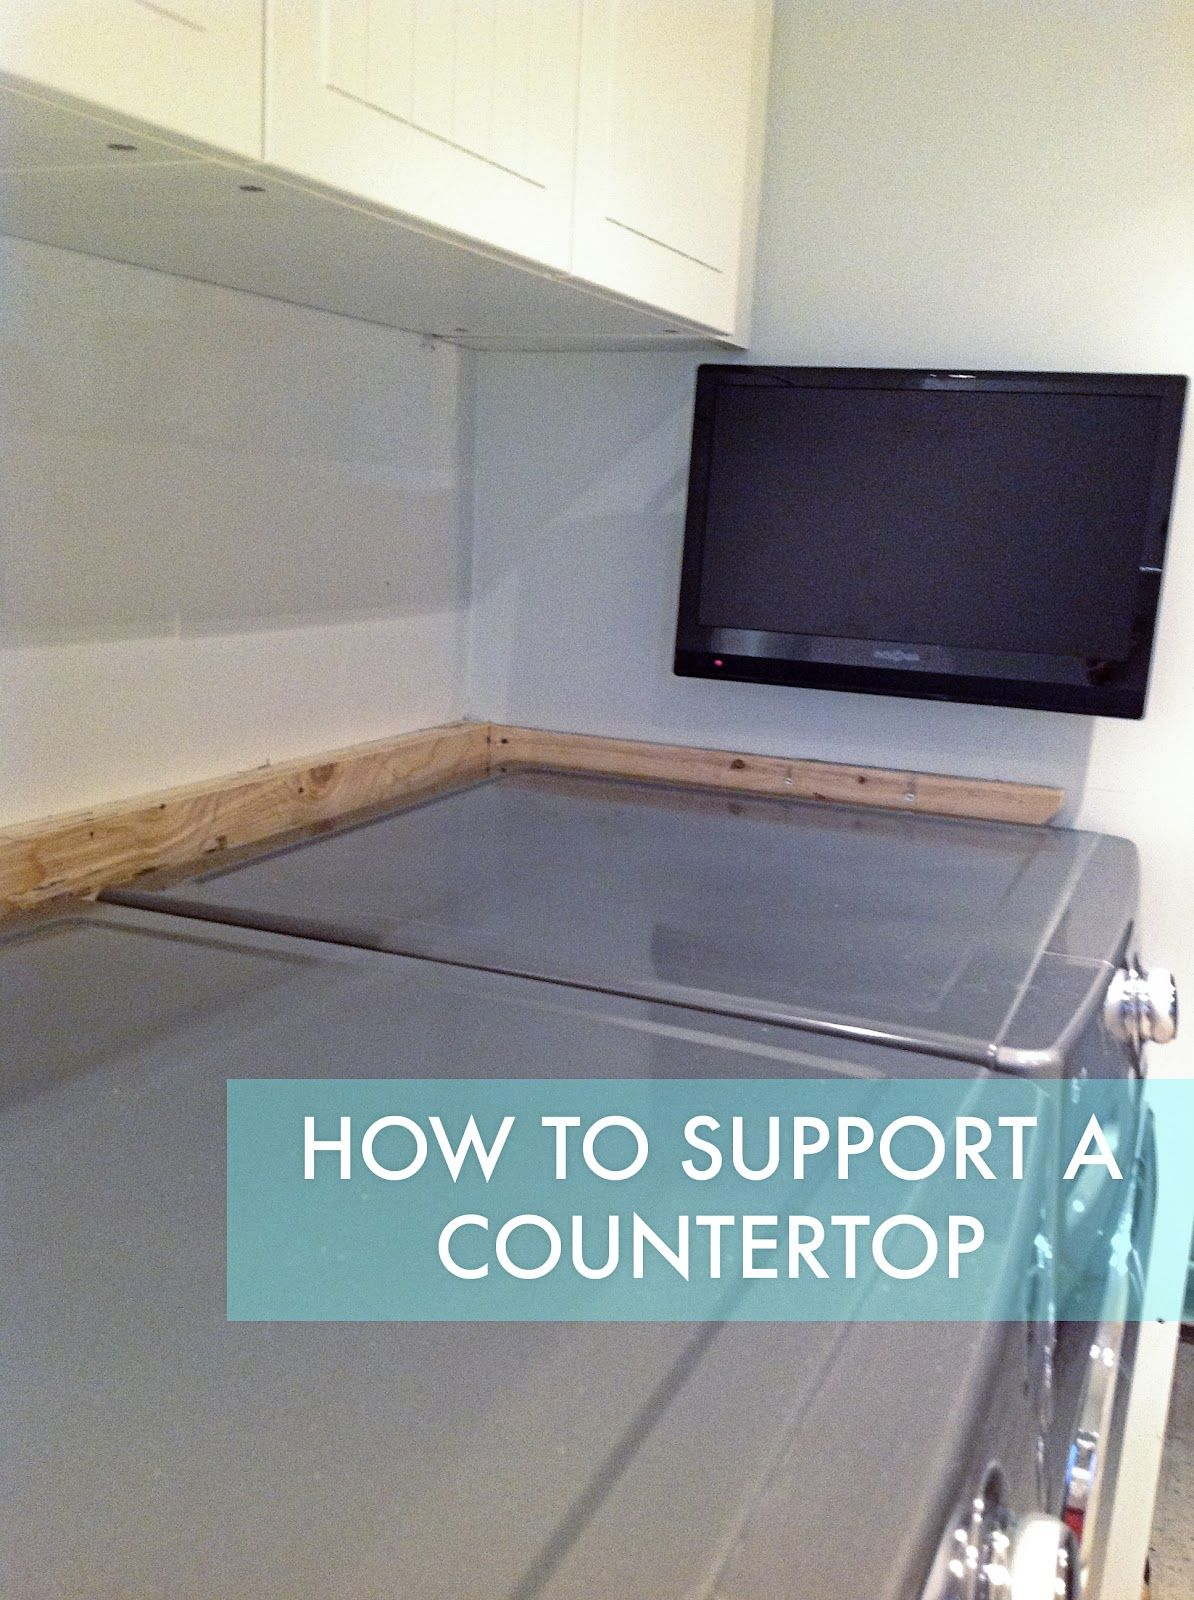 Good Find This Pin And More On DIY By Jessicarosem. Laundry Room Rambling  Renovators: How To Support A Countertop